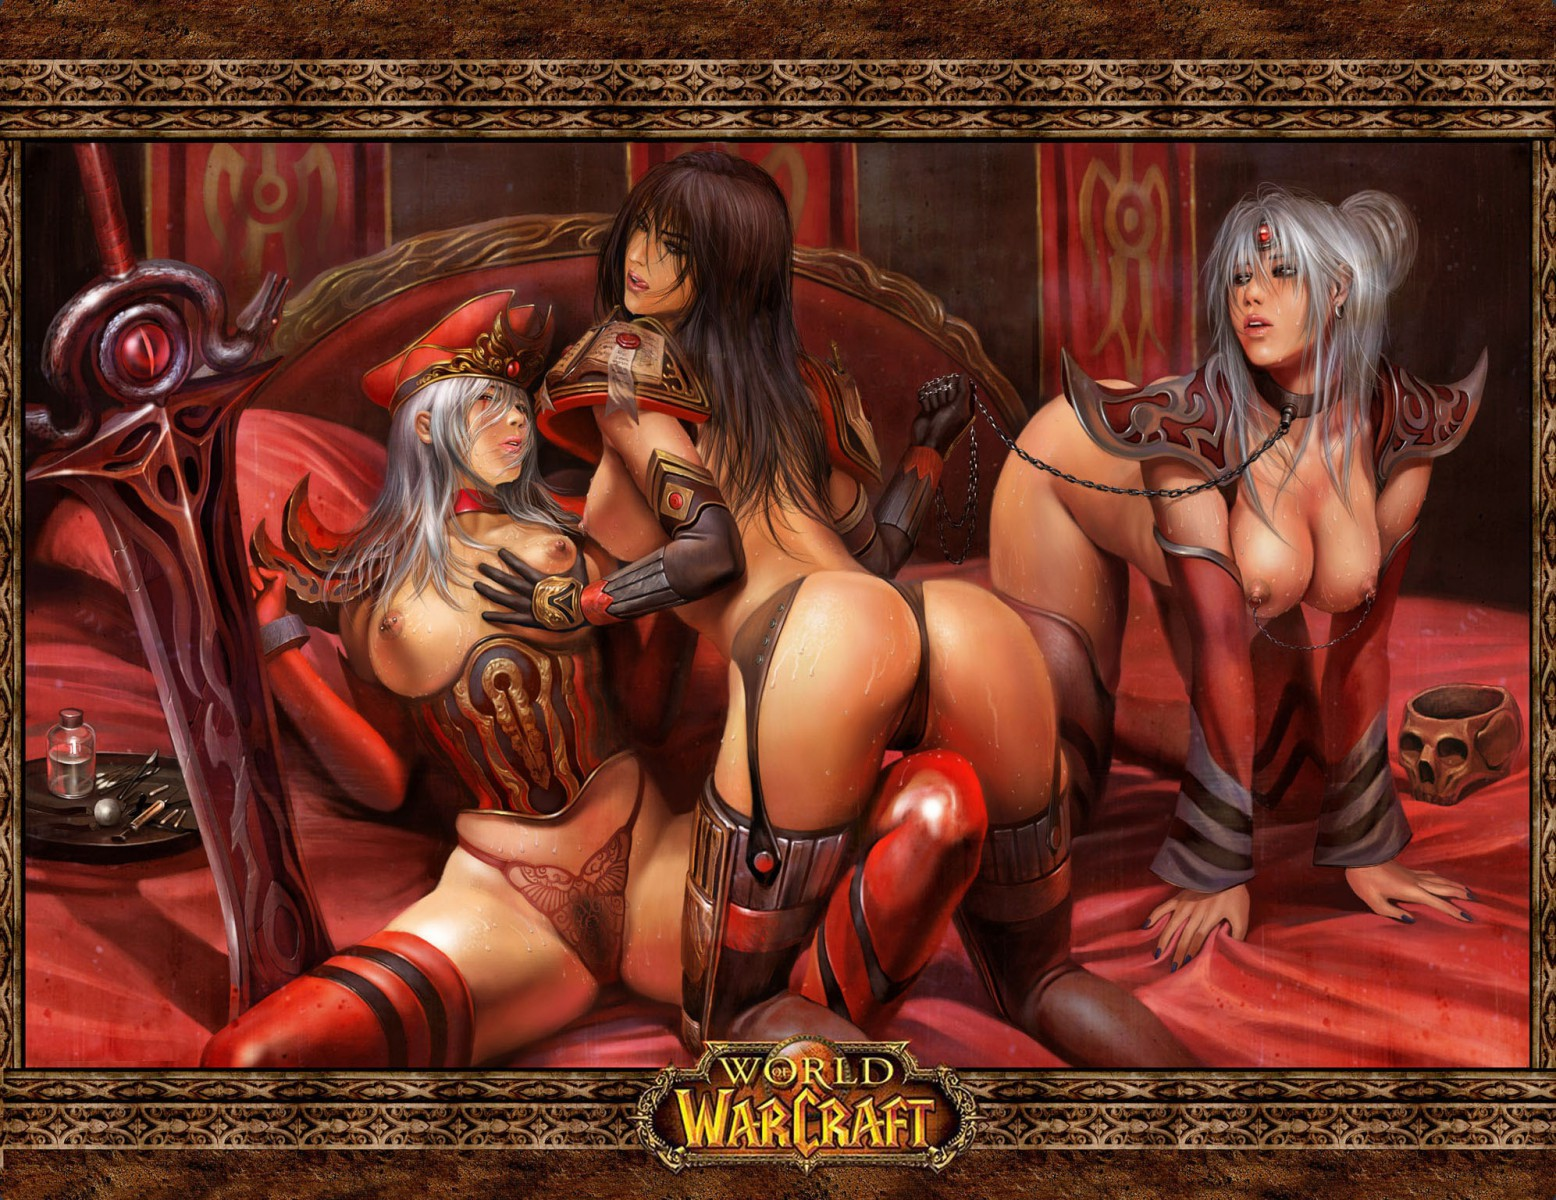 World of warcraft porn gallery xxx pictures